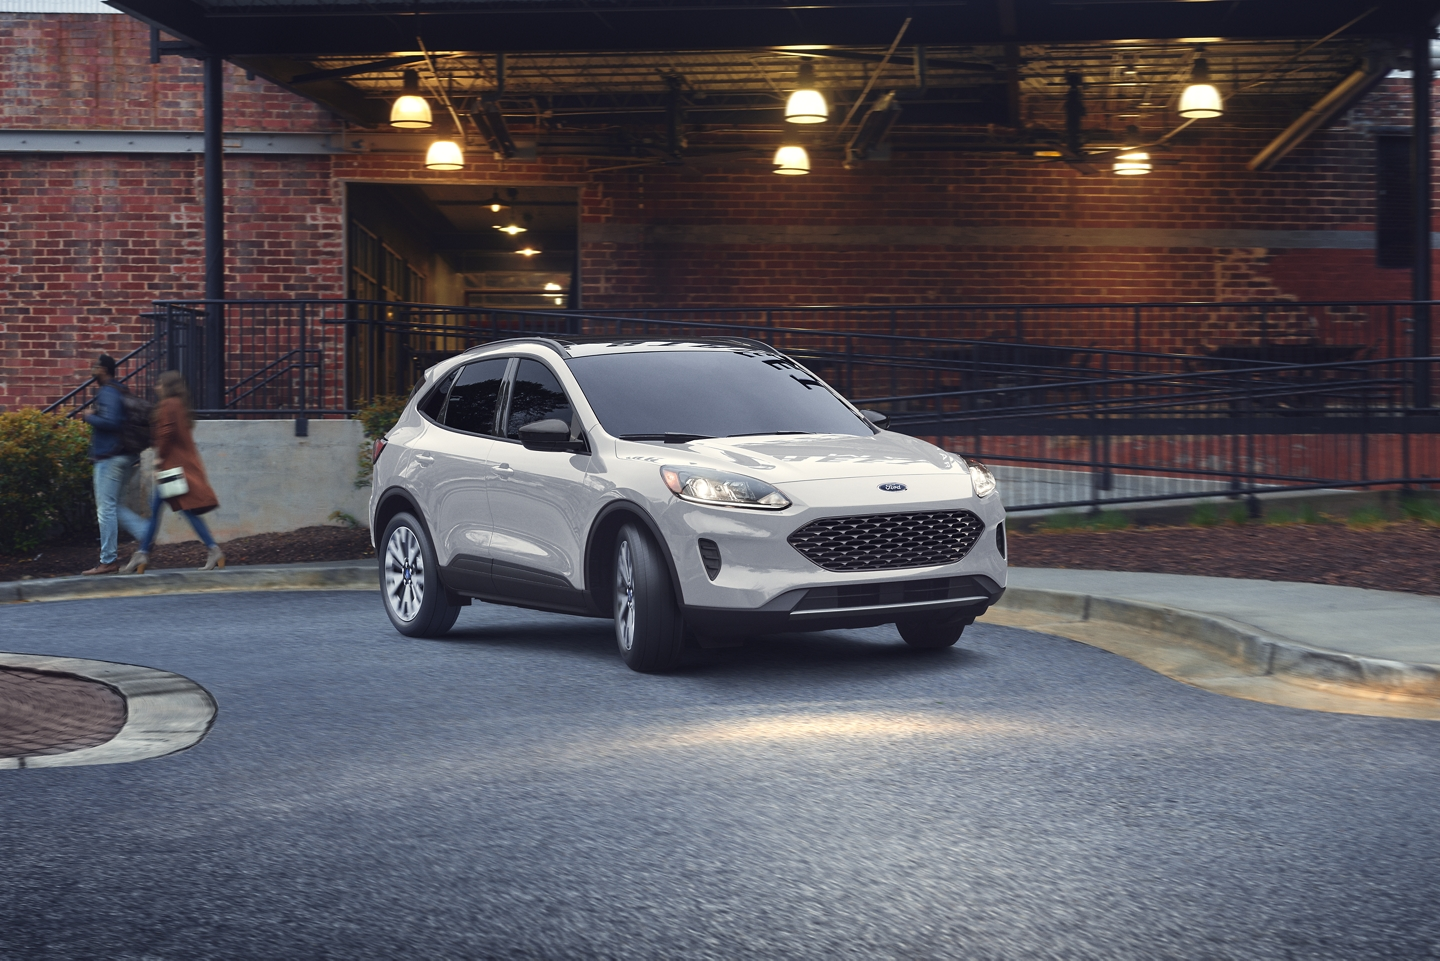 white 2020 ford escape driving past brick building